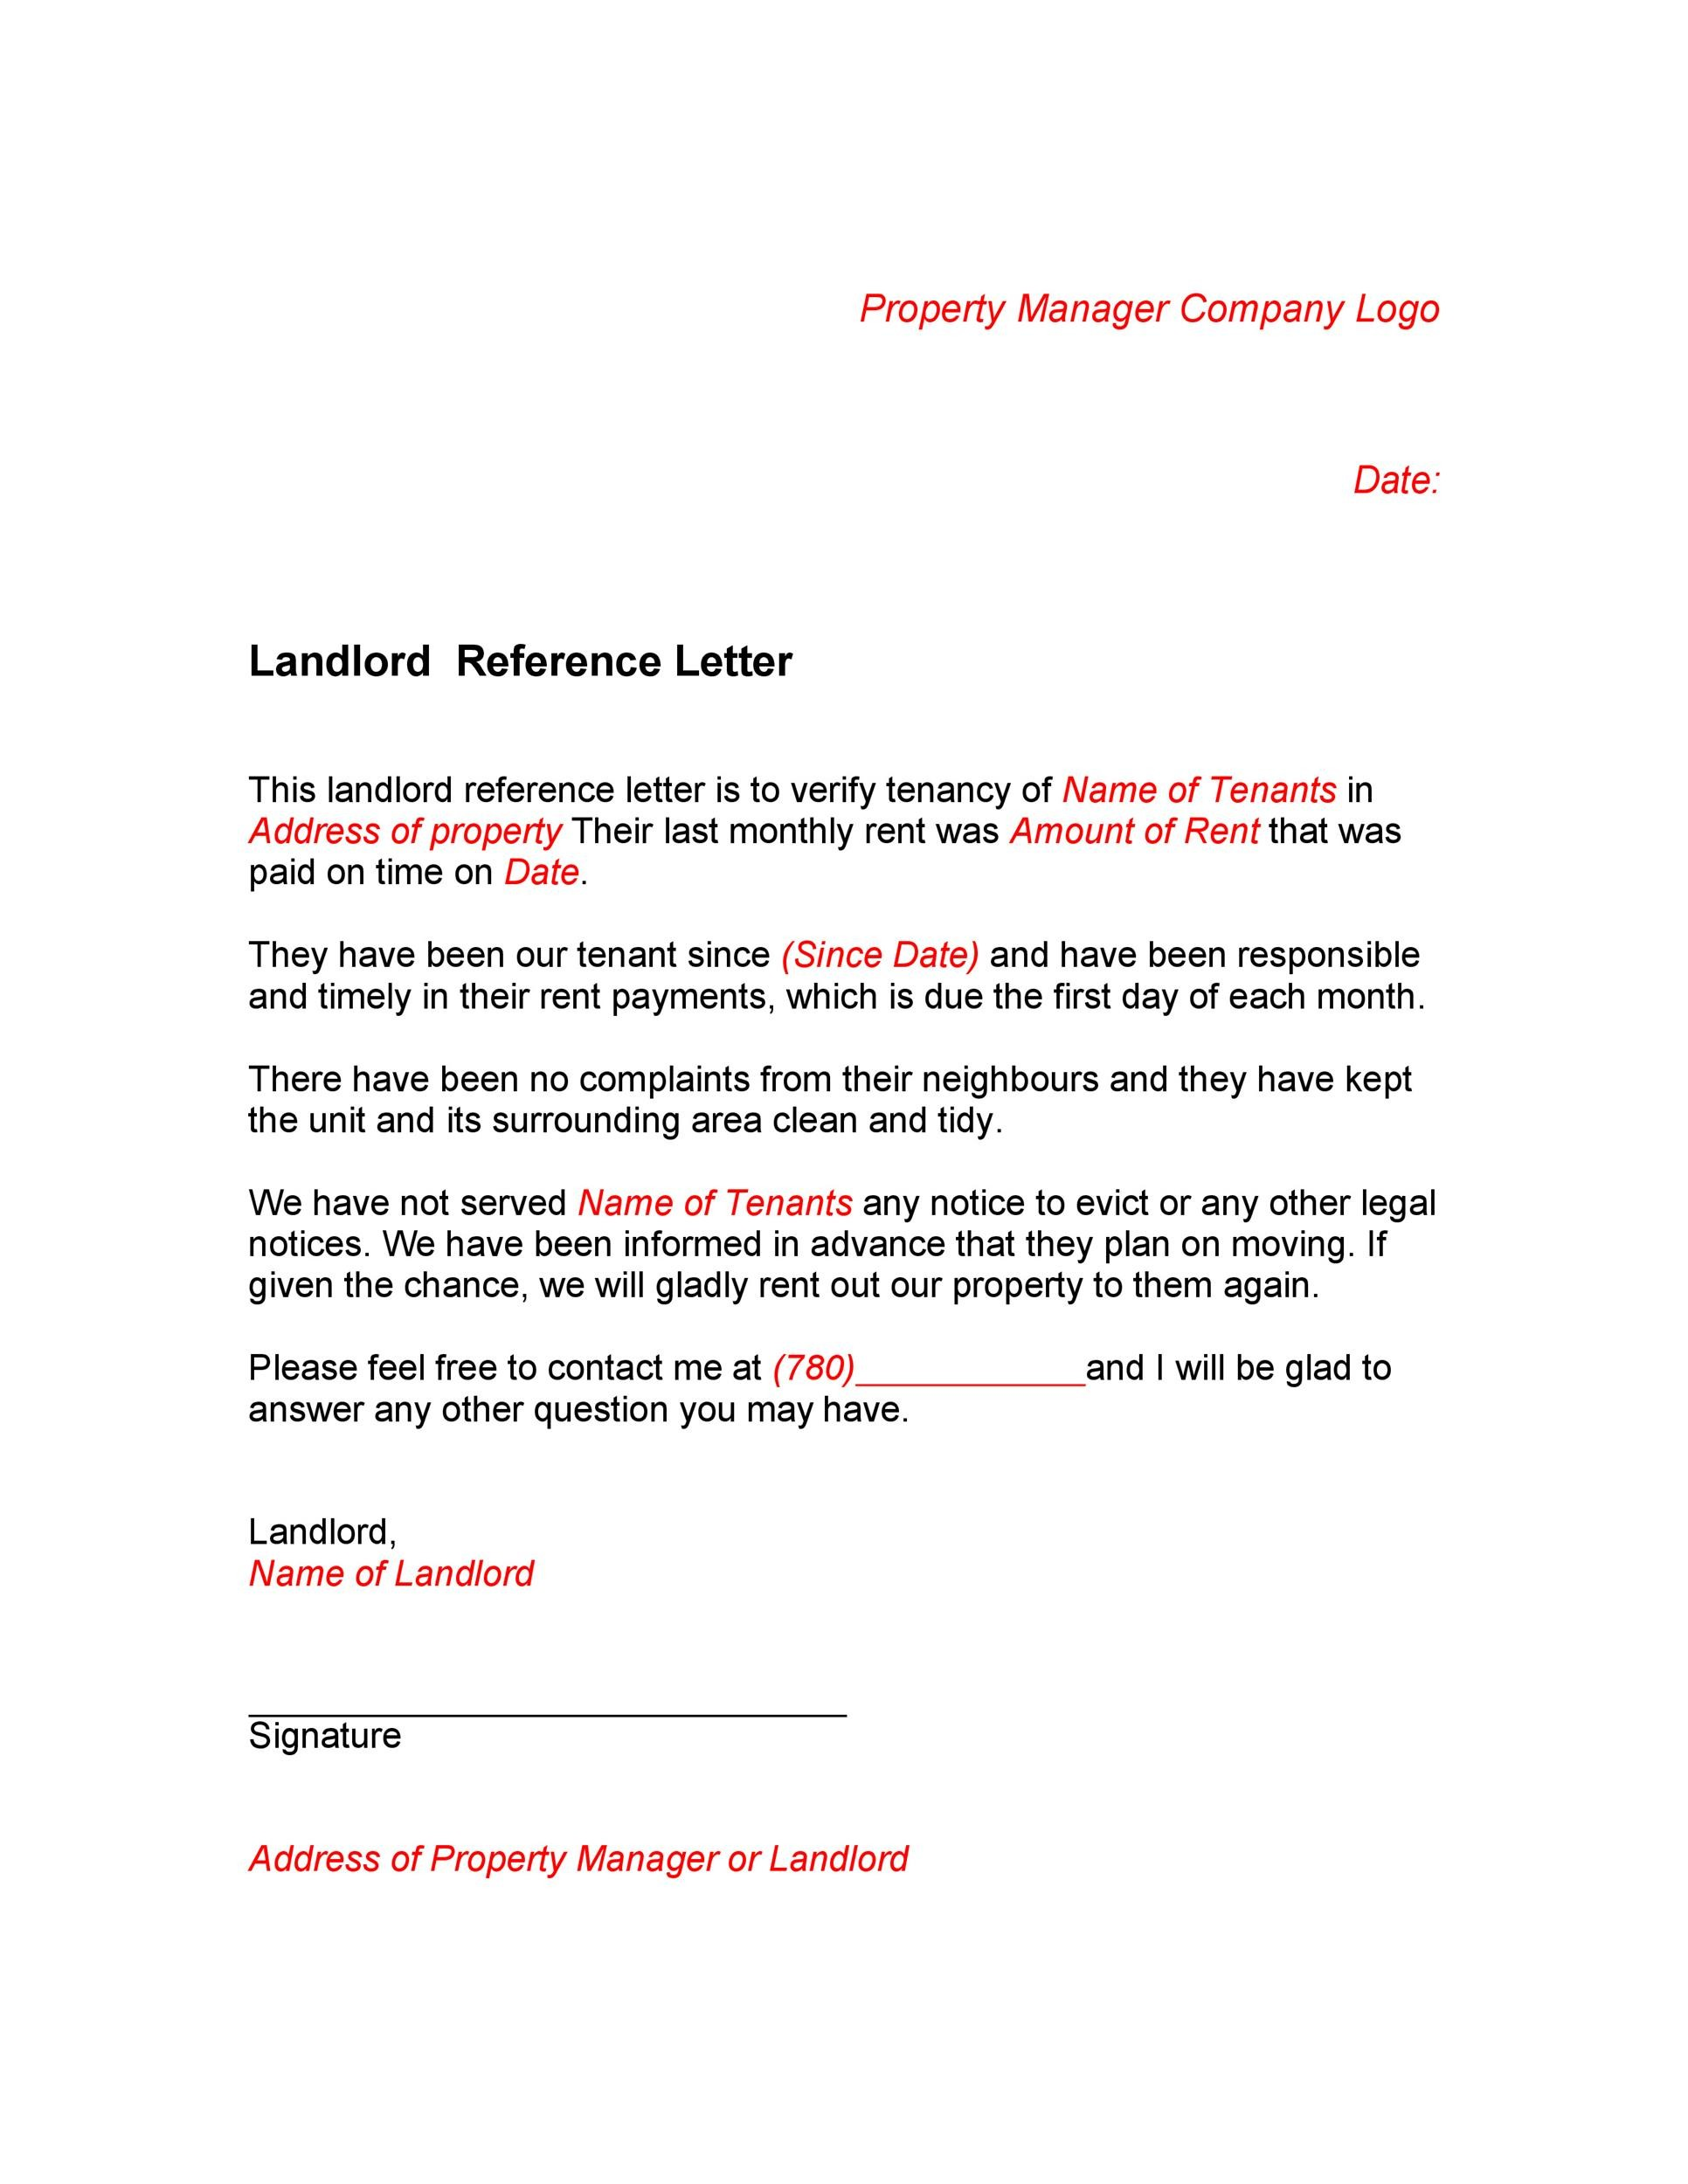 Free landlord reference letter 24